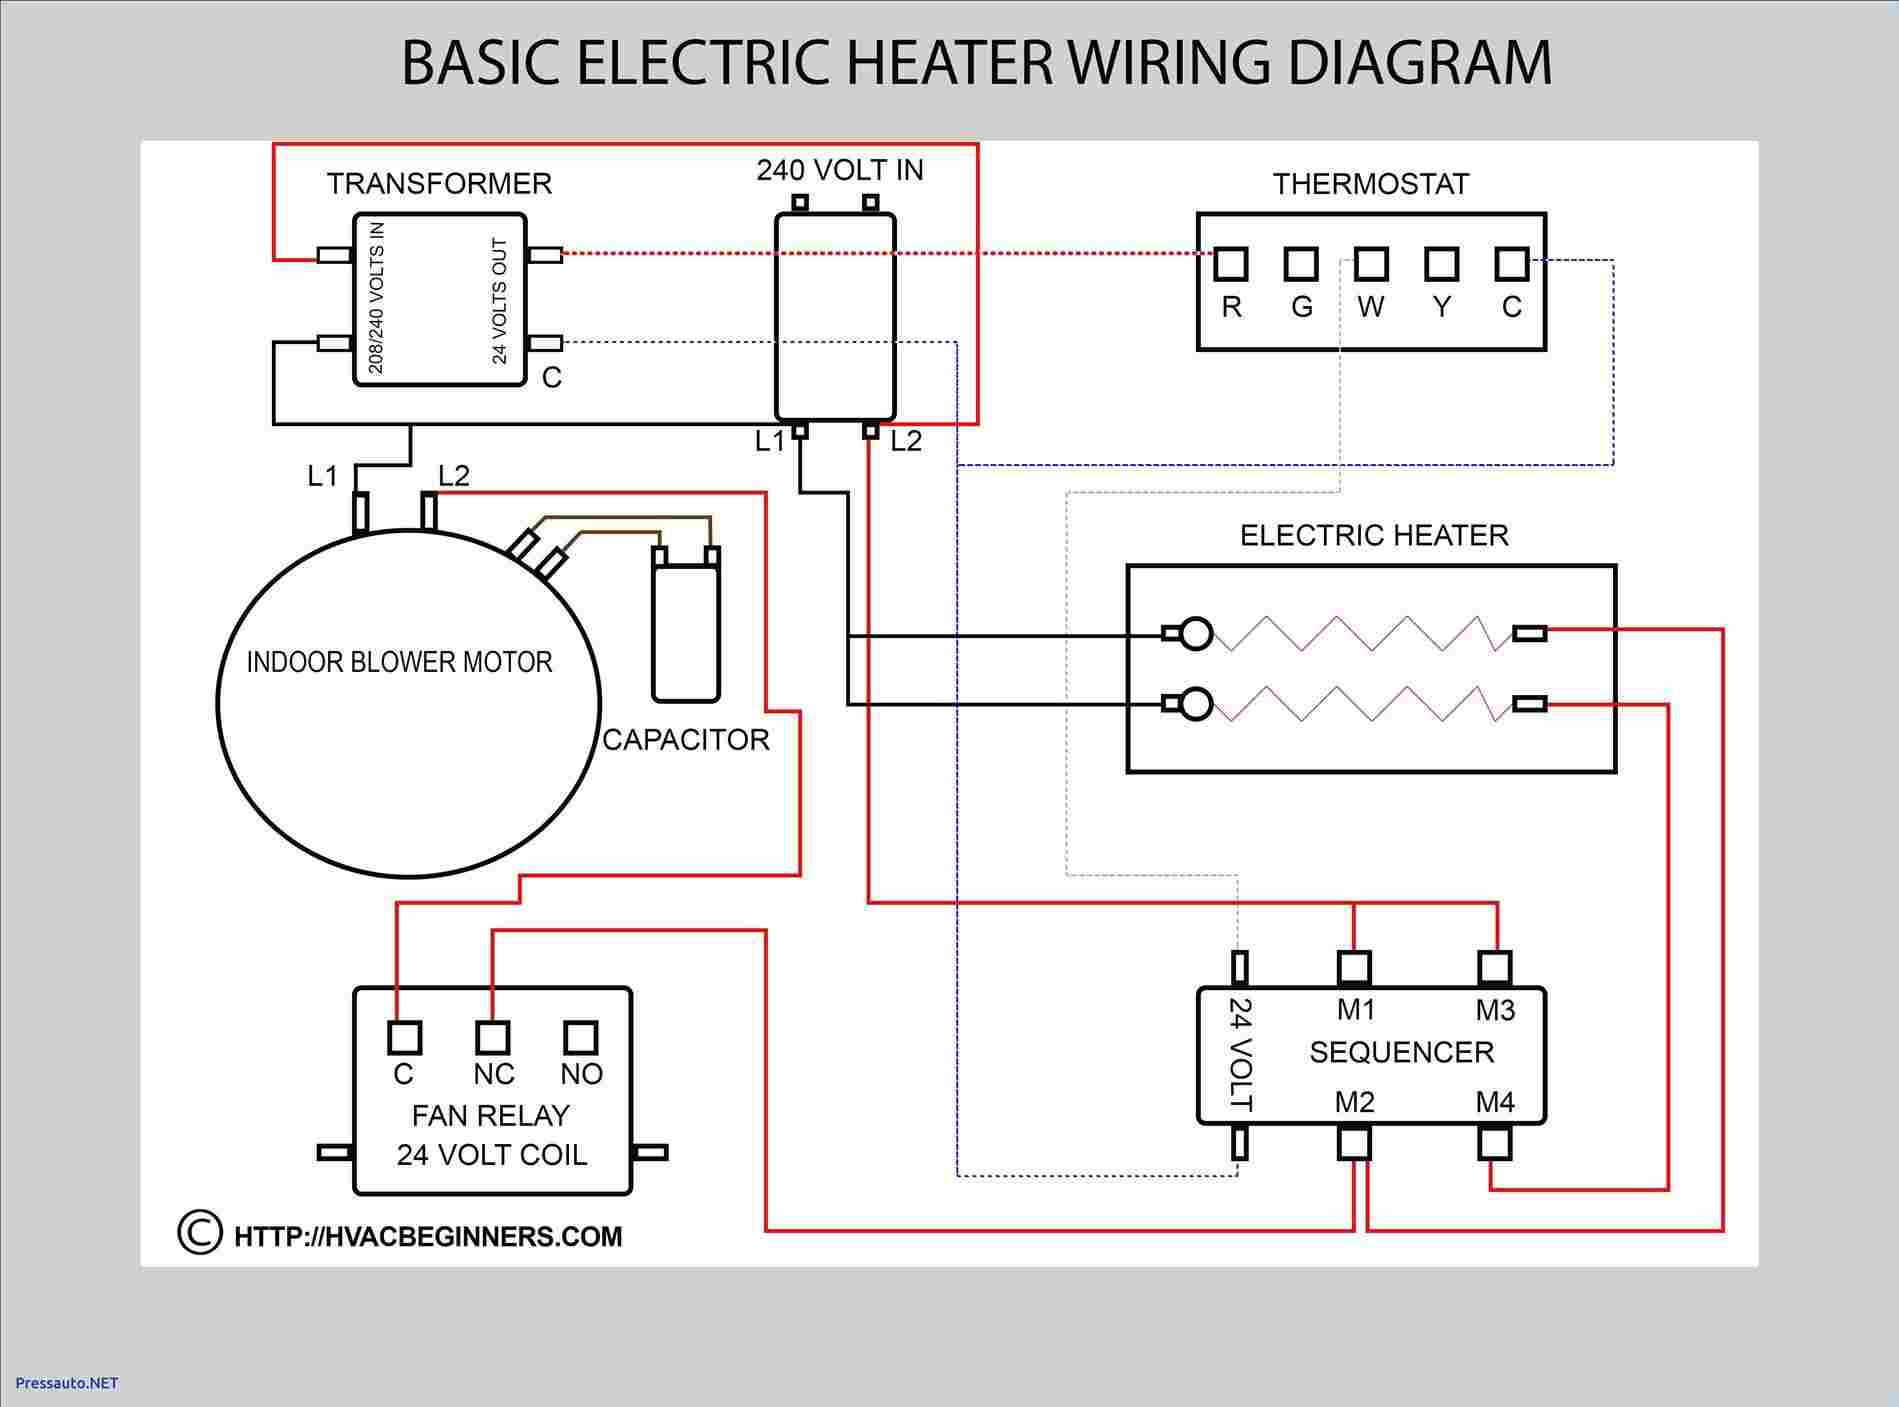 Coleman Mach Thermostat Wiring | Diagram Chart - Coleman Mach Thermostat Wiring Diagram